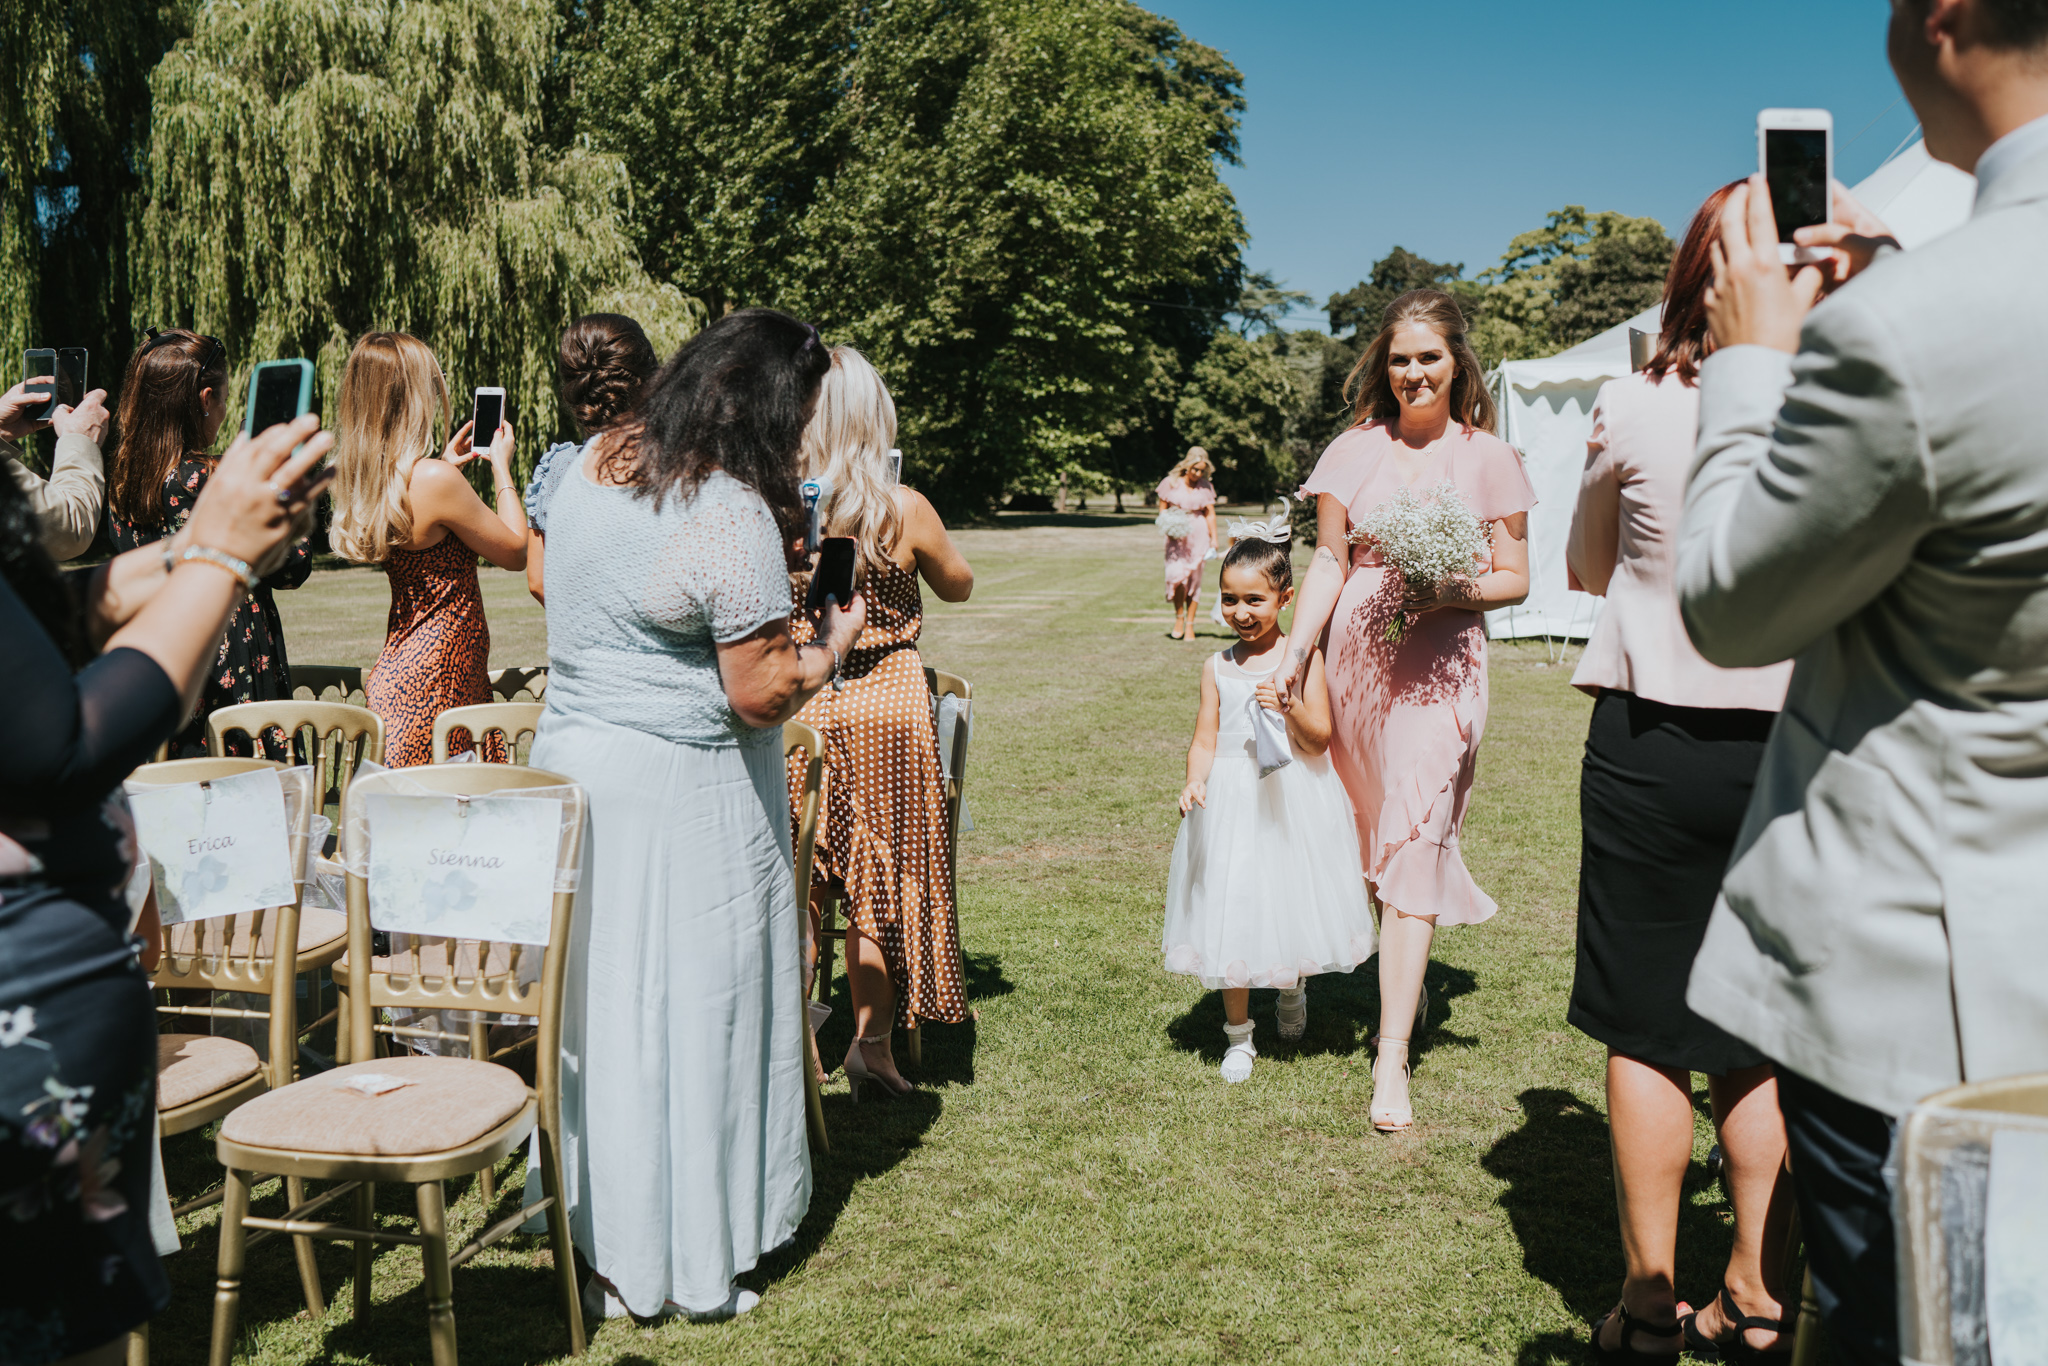 Sophie-Christian-Prested-Hall-DIY-Boho-Outdoor-Wedding-Grace-Elizabeth-Alternative-Wedding-Photographer-Colchester-Essex (28 of 113).jpg